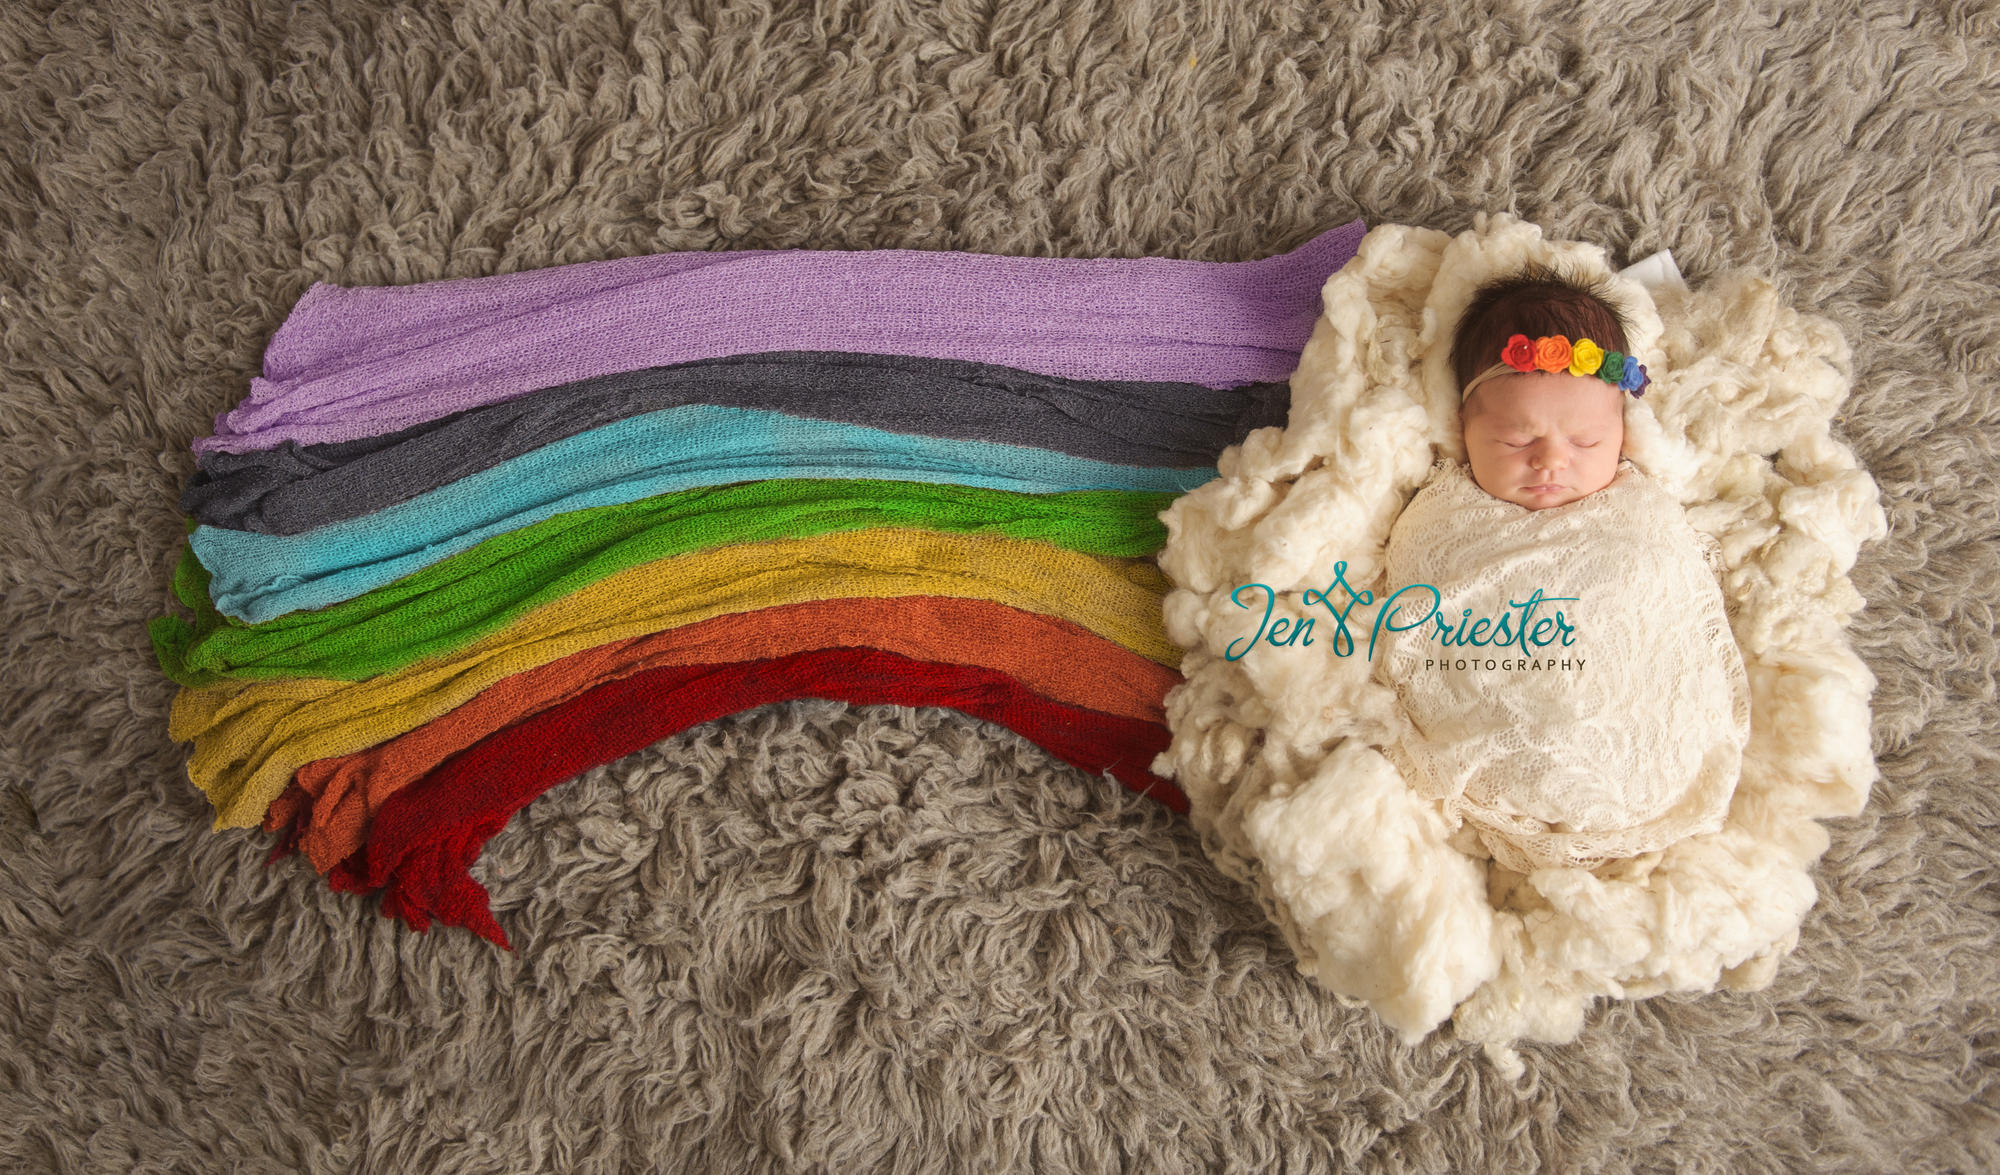 Couple Celebrates Rainbow Baby with Stunning Photo Shoot